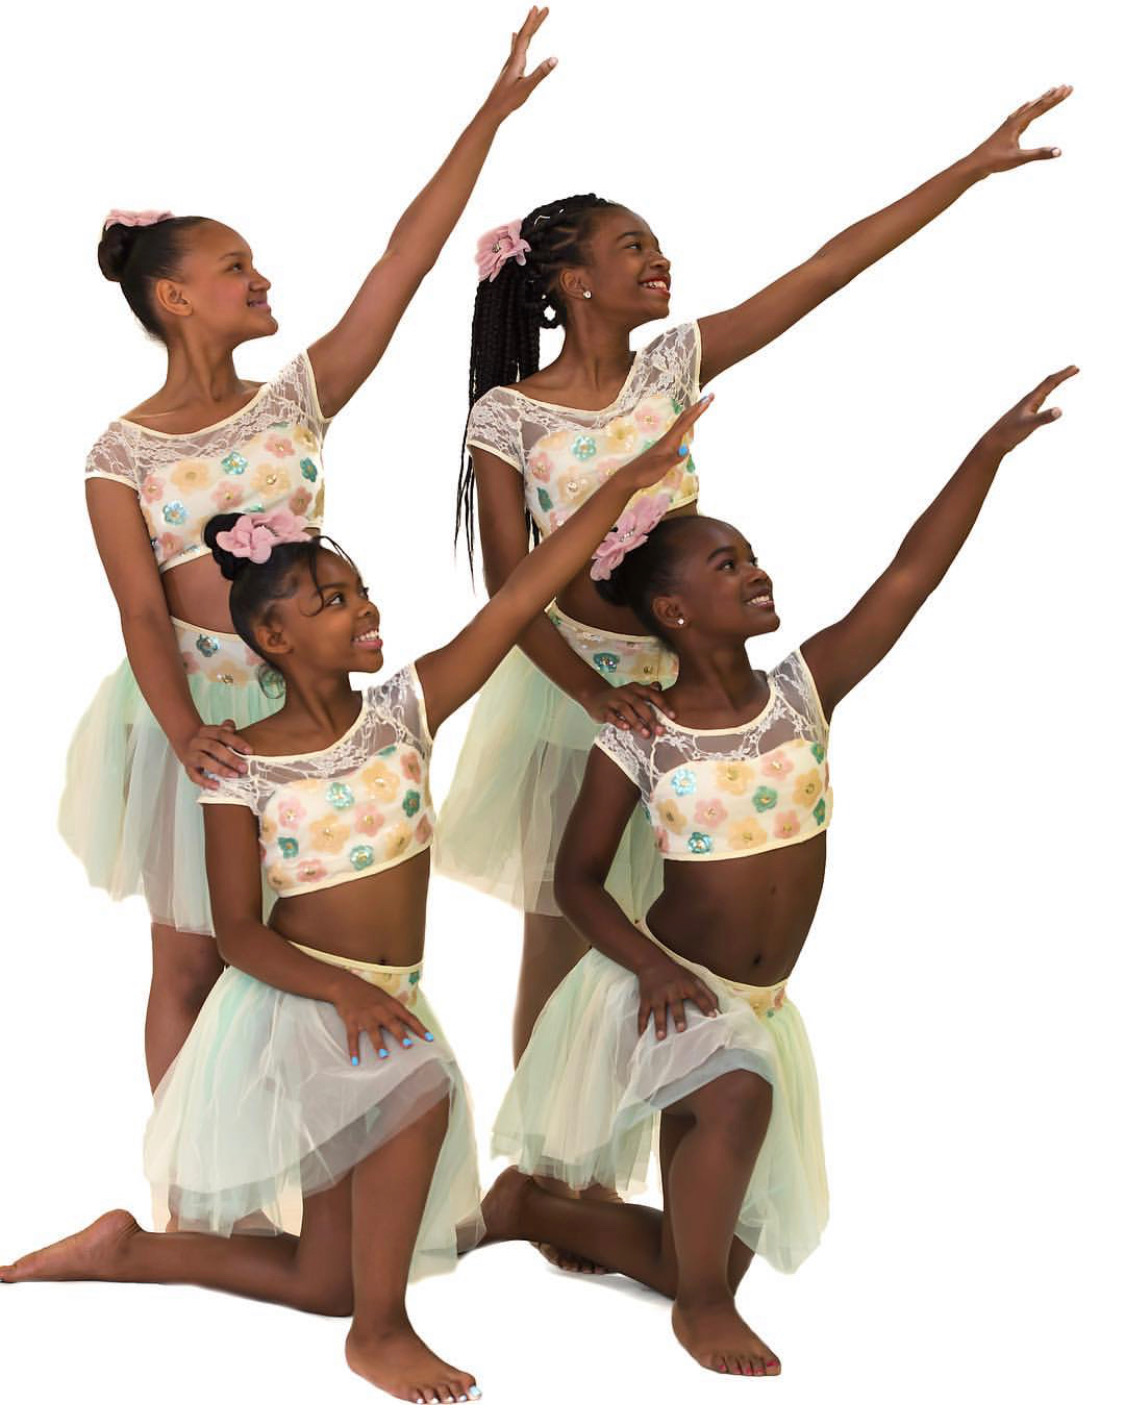 """Booking - Looking to give your event an artistic edge? Need to take your religious event to the next level with a praise dance performance? Studio Detroit Dance Center is available to perform at your next event! If you're interested in booking our dancers for your next occasion, simply send us an email through the """"Contact Us"""" page including your name, the name of your organization, phone number, anticipated event dates, event duration and any additional details, and an SDDC team member will follow up with you."""